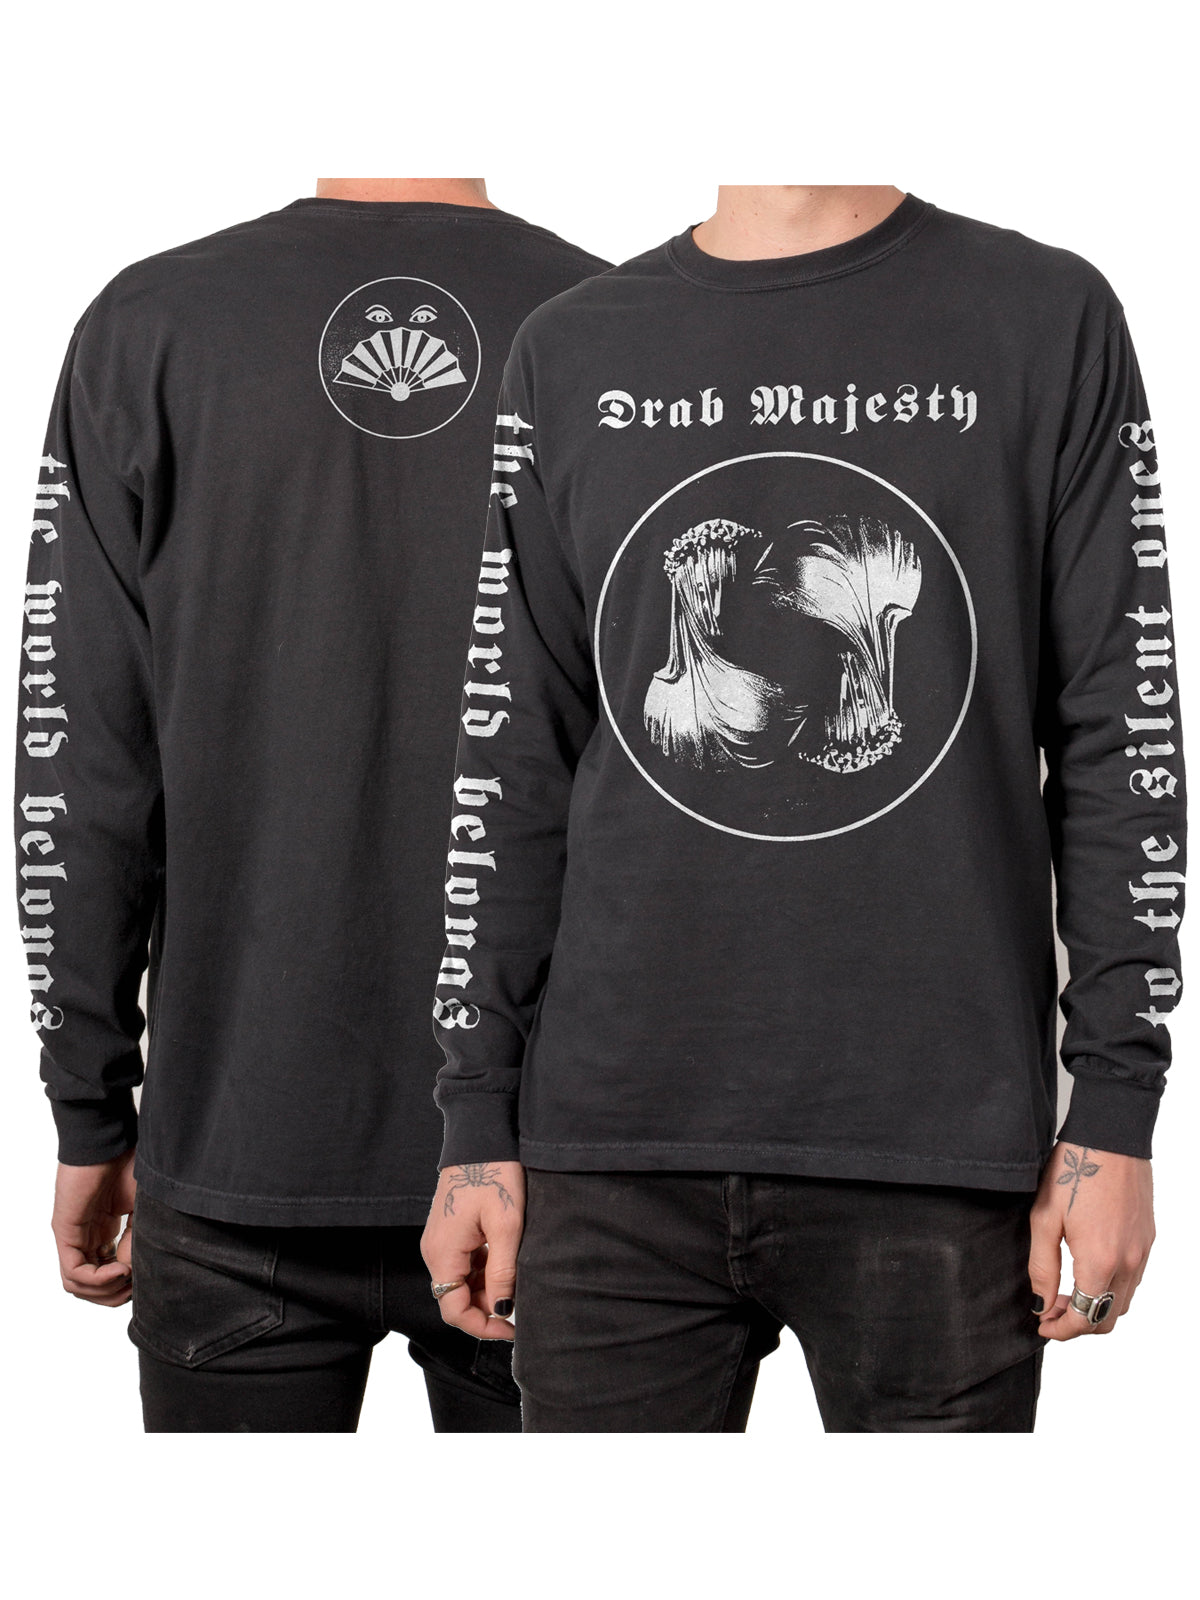 Drab Majesty - The Silent Ones Longsleeve - Merch Limited